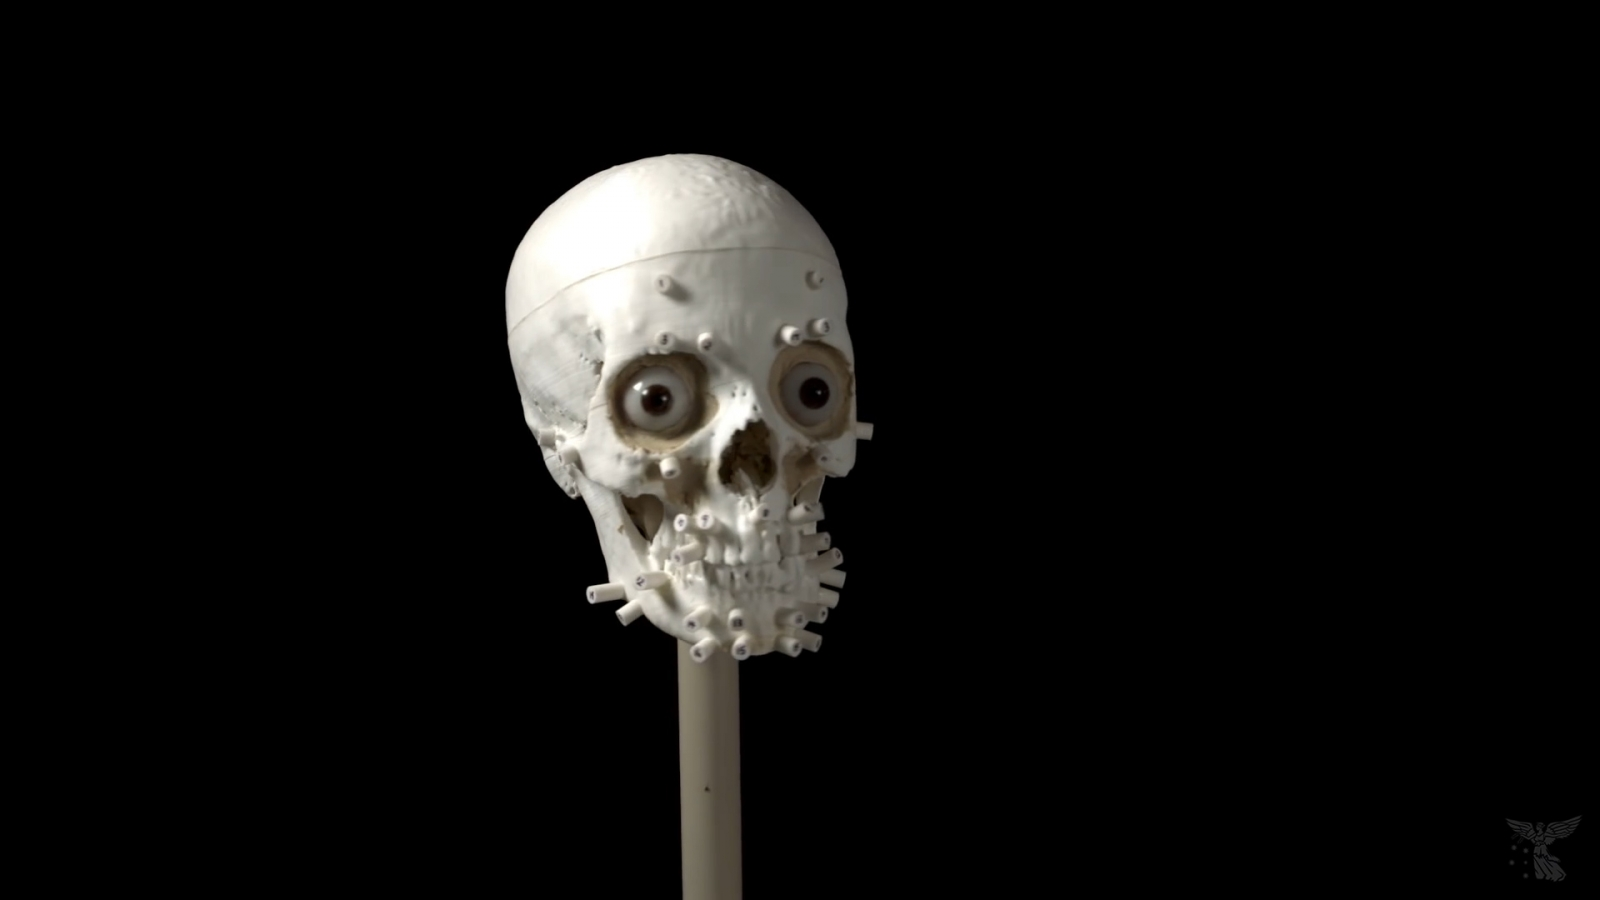 Skeleton reconstructed using 3D printing